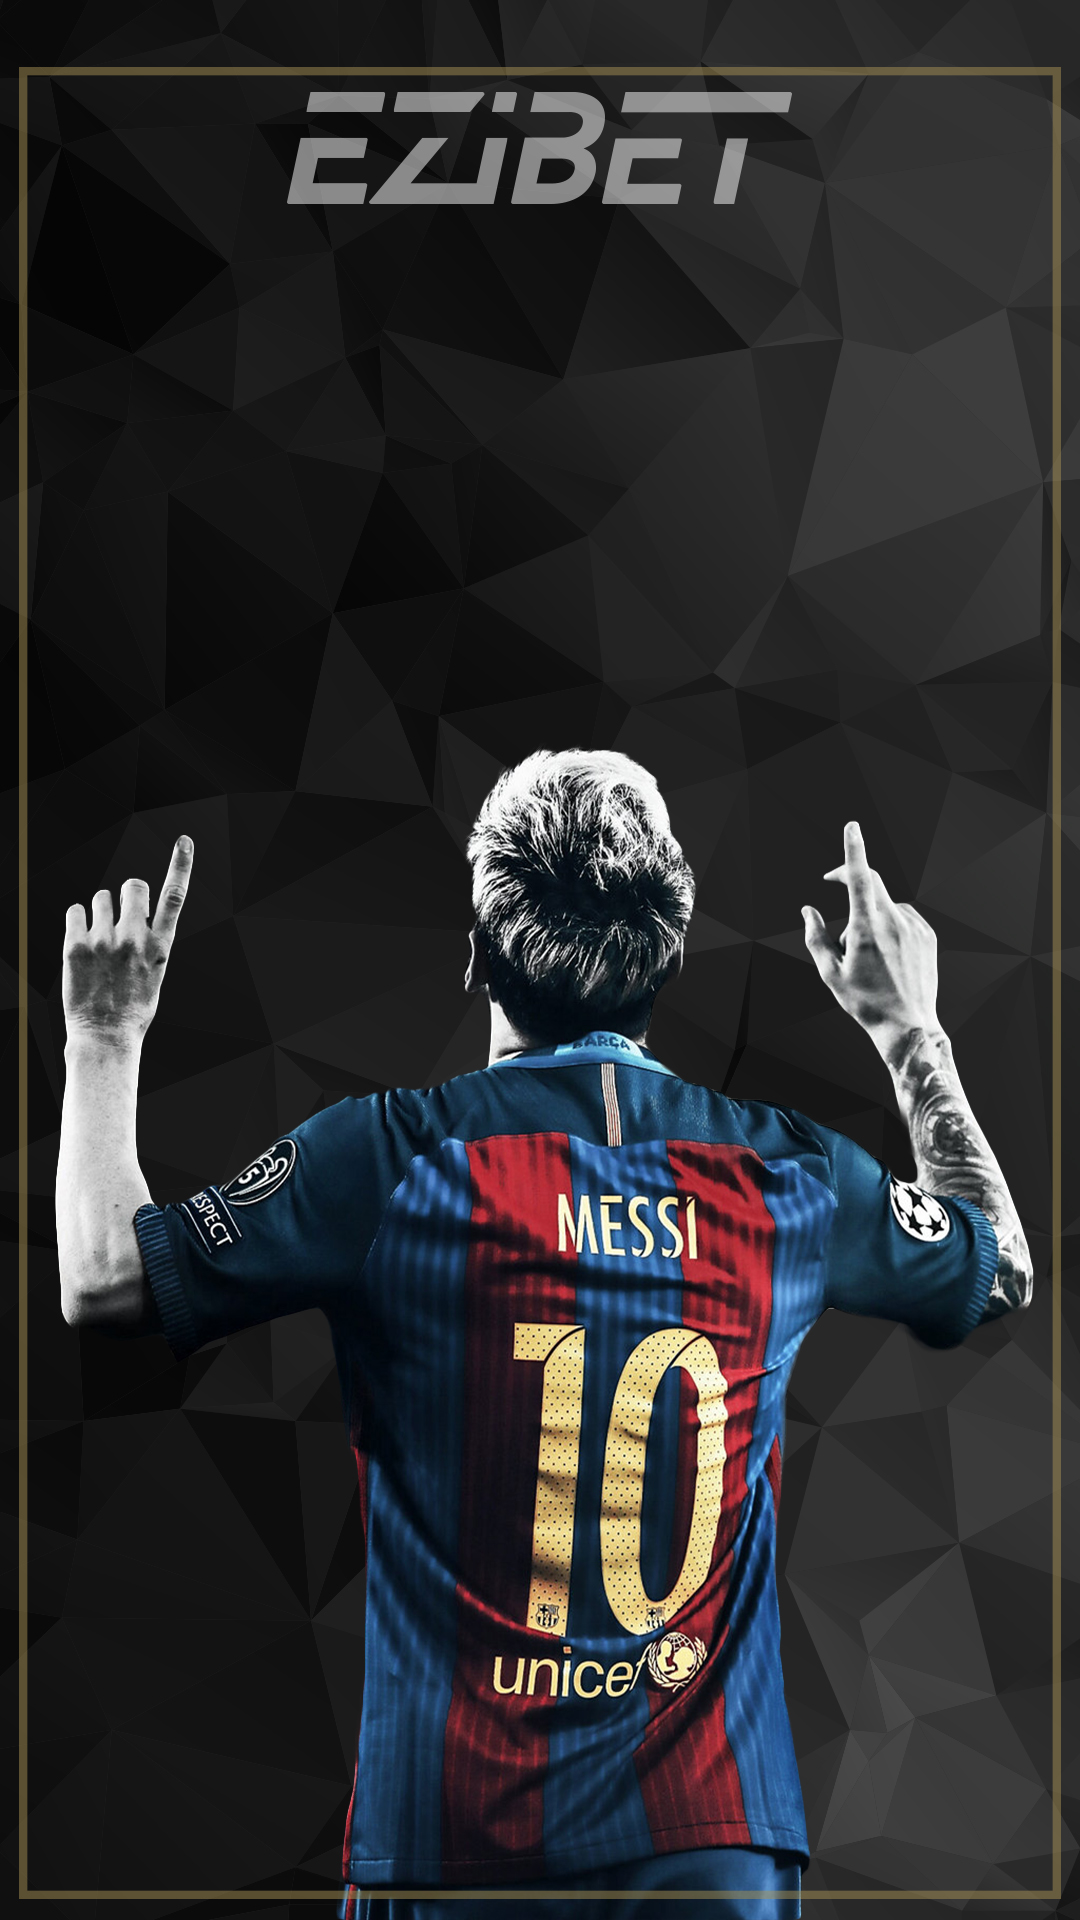 Messi mobile wallpaper.jpg